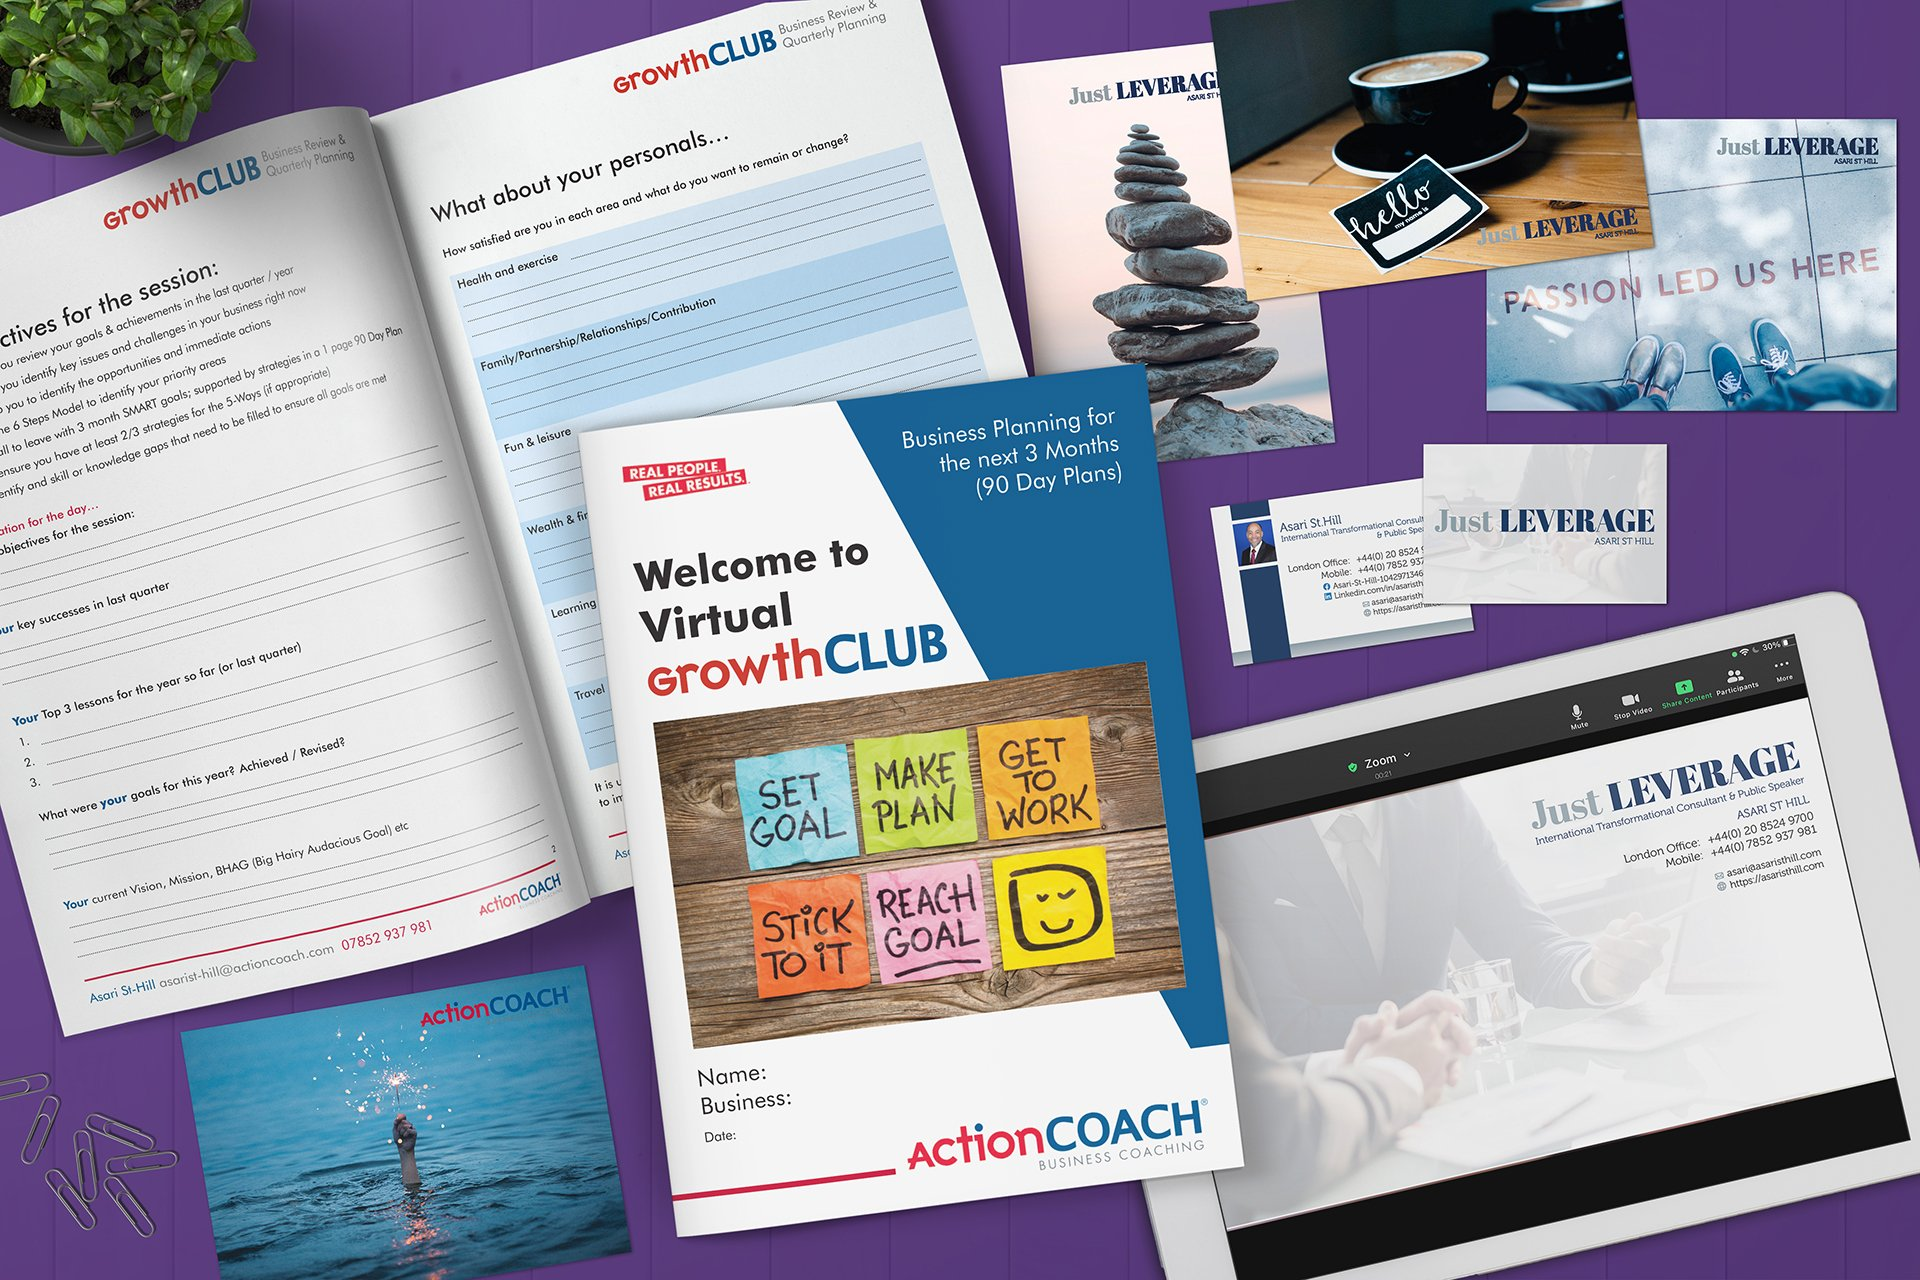 Action Coach branded workbook marketing collateral